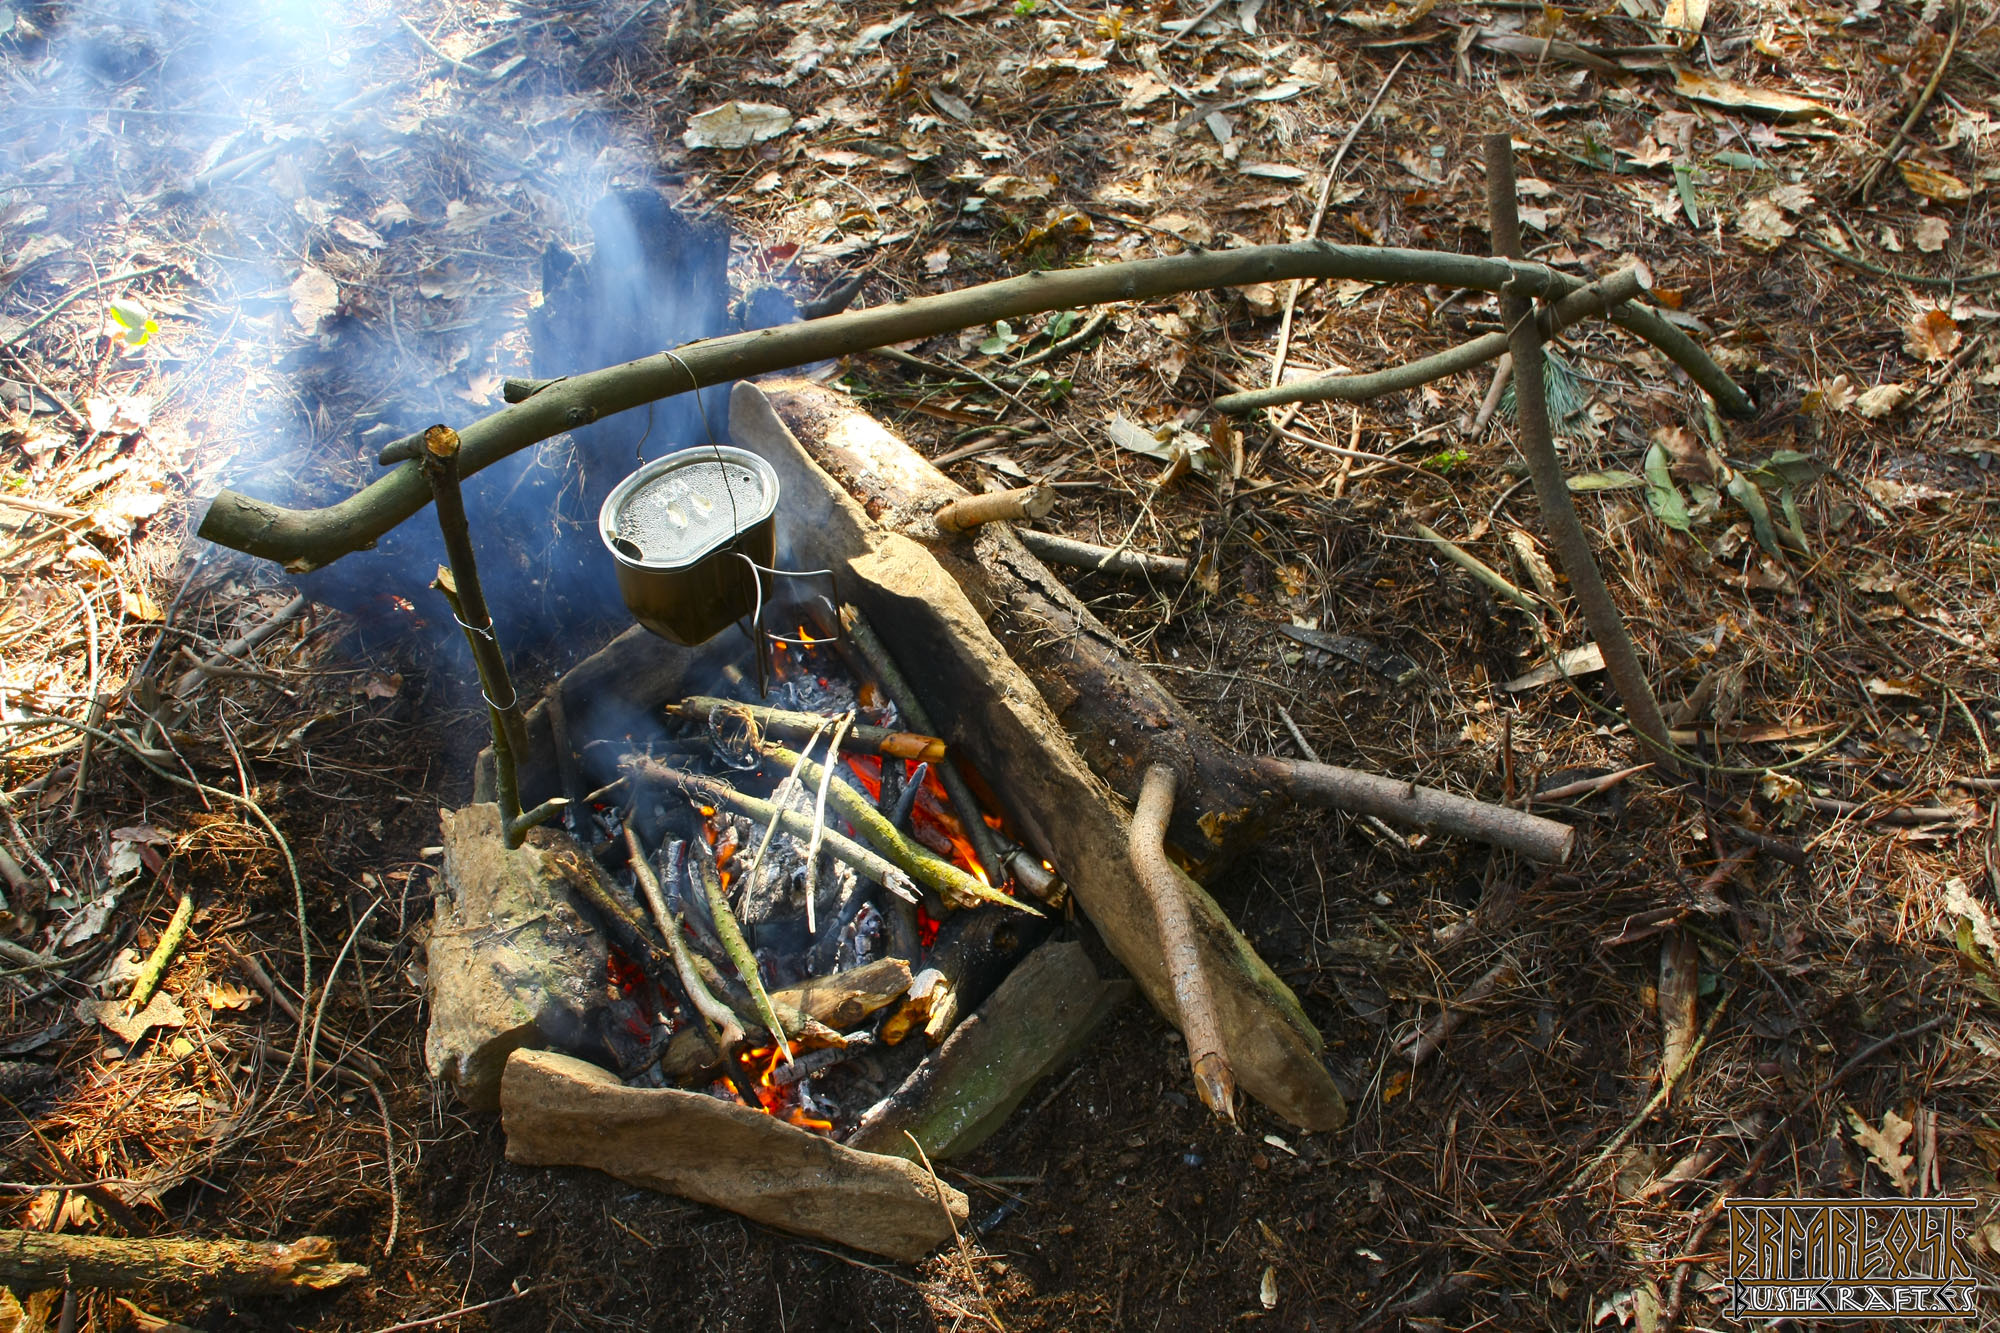 Bushcraft no es supervivencia.